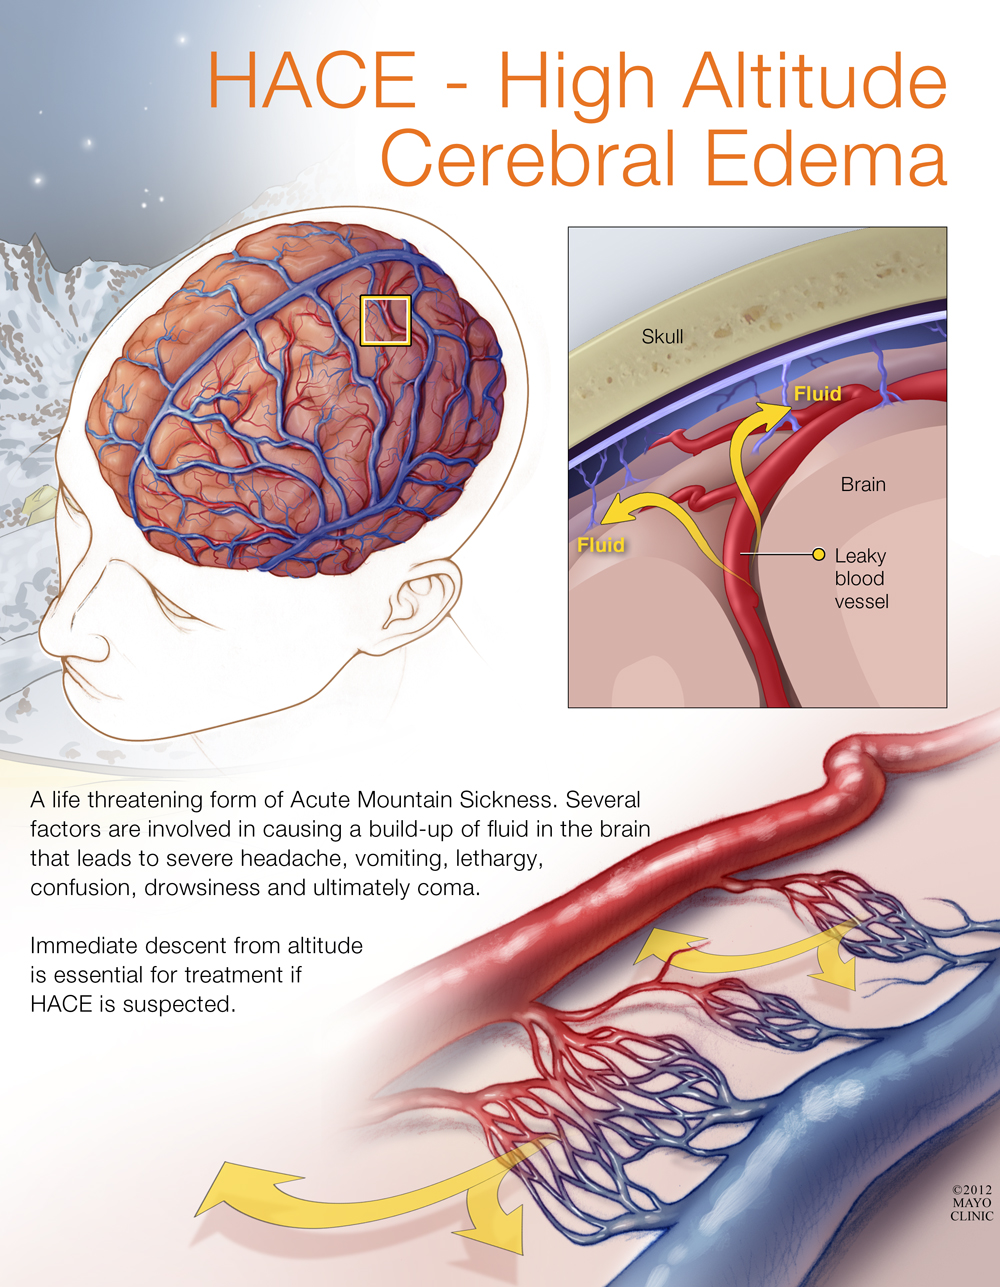 HACE or High Altitude Cerebral Edema | Advancing the Science